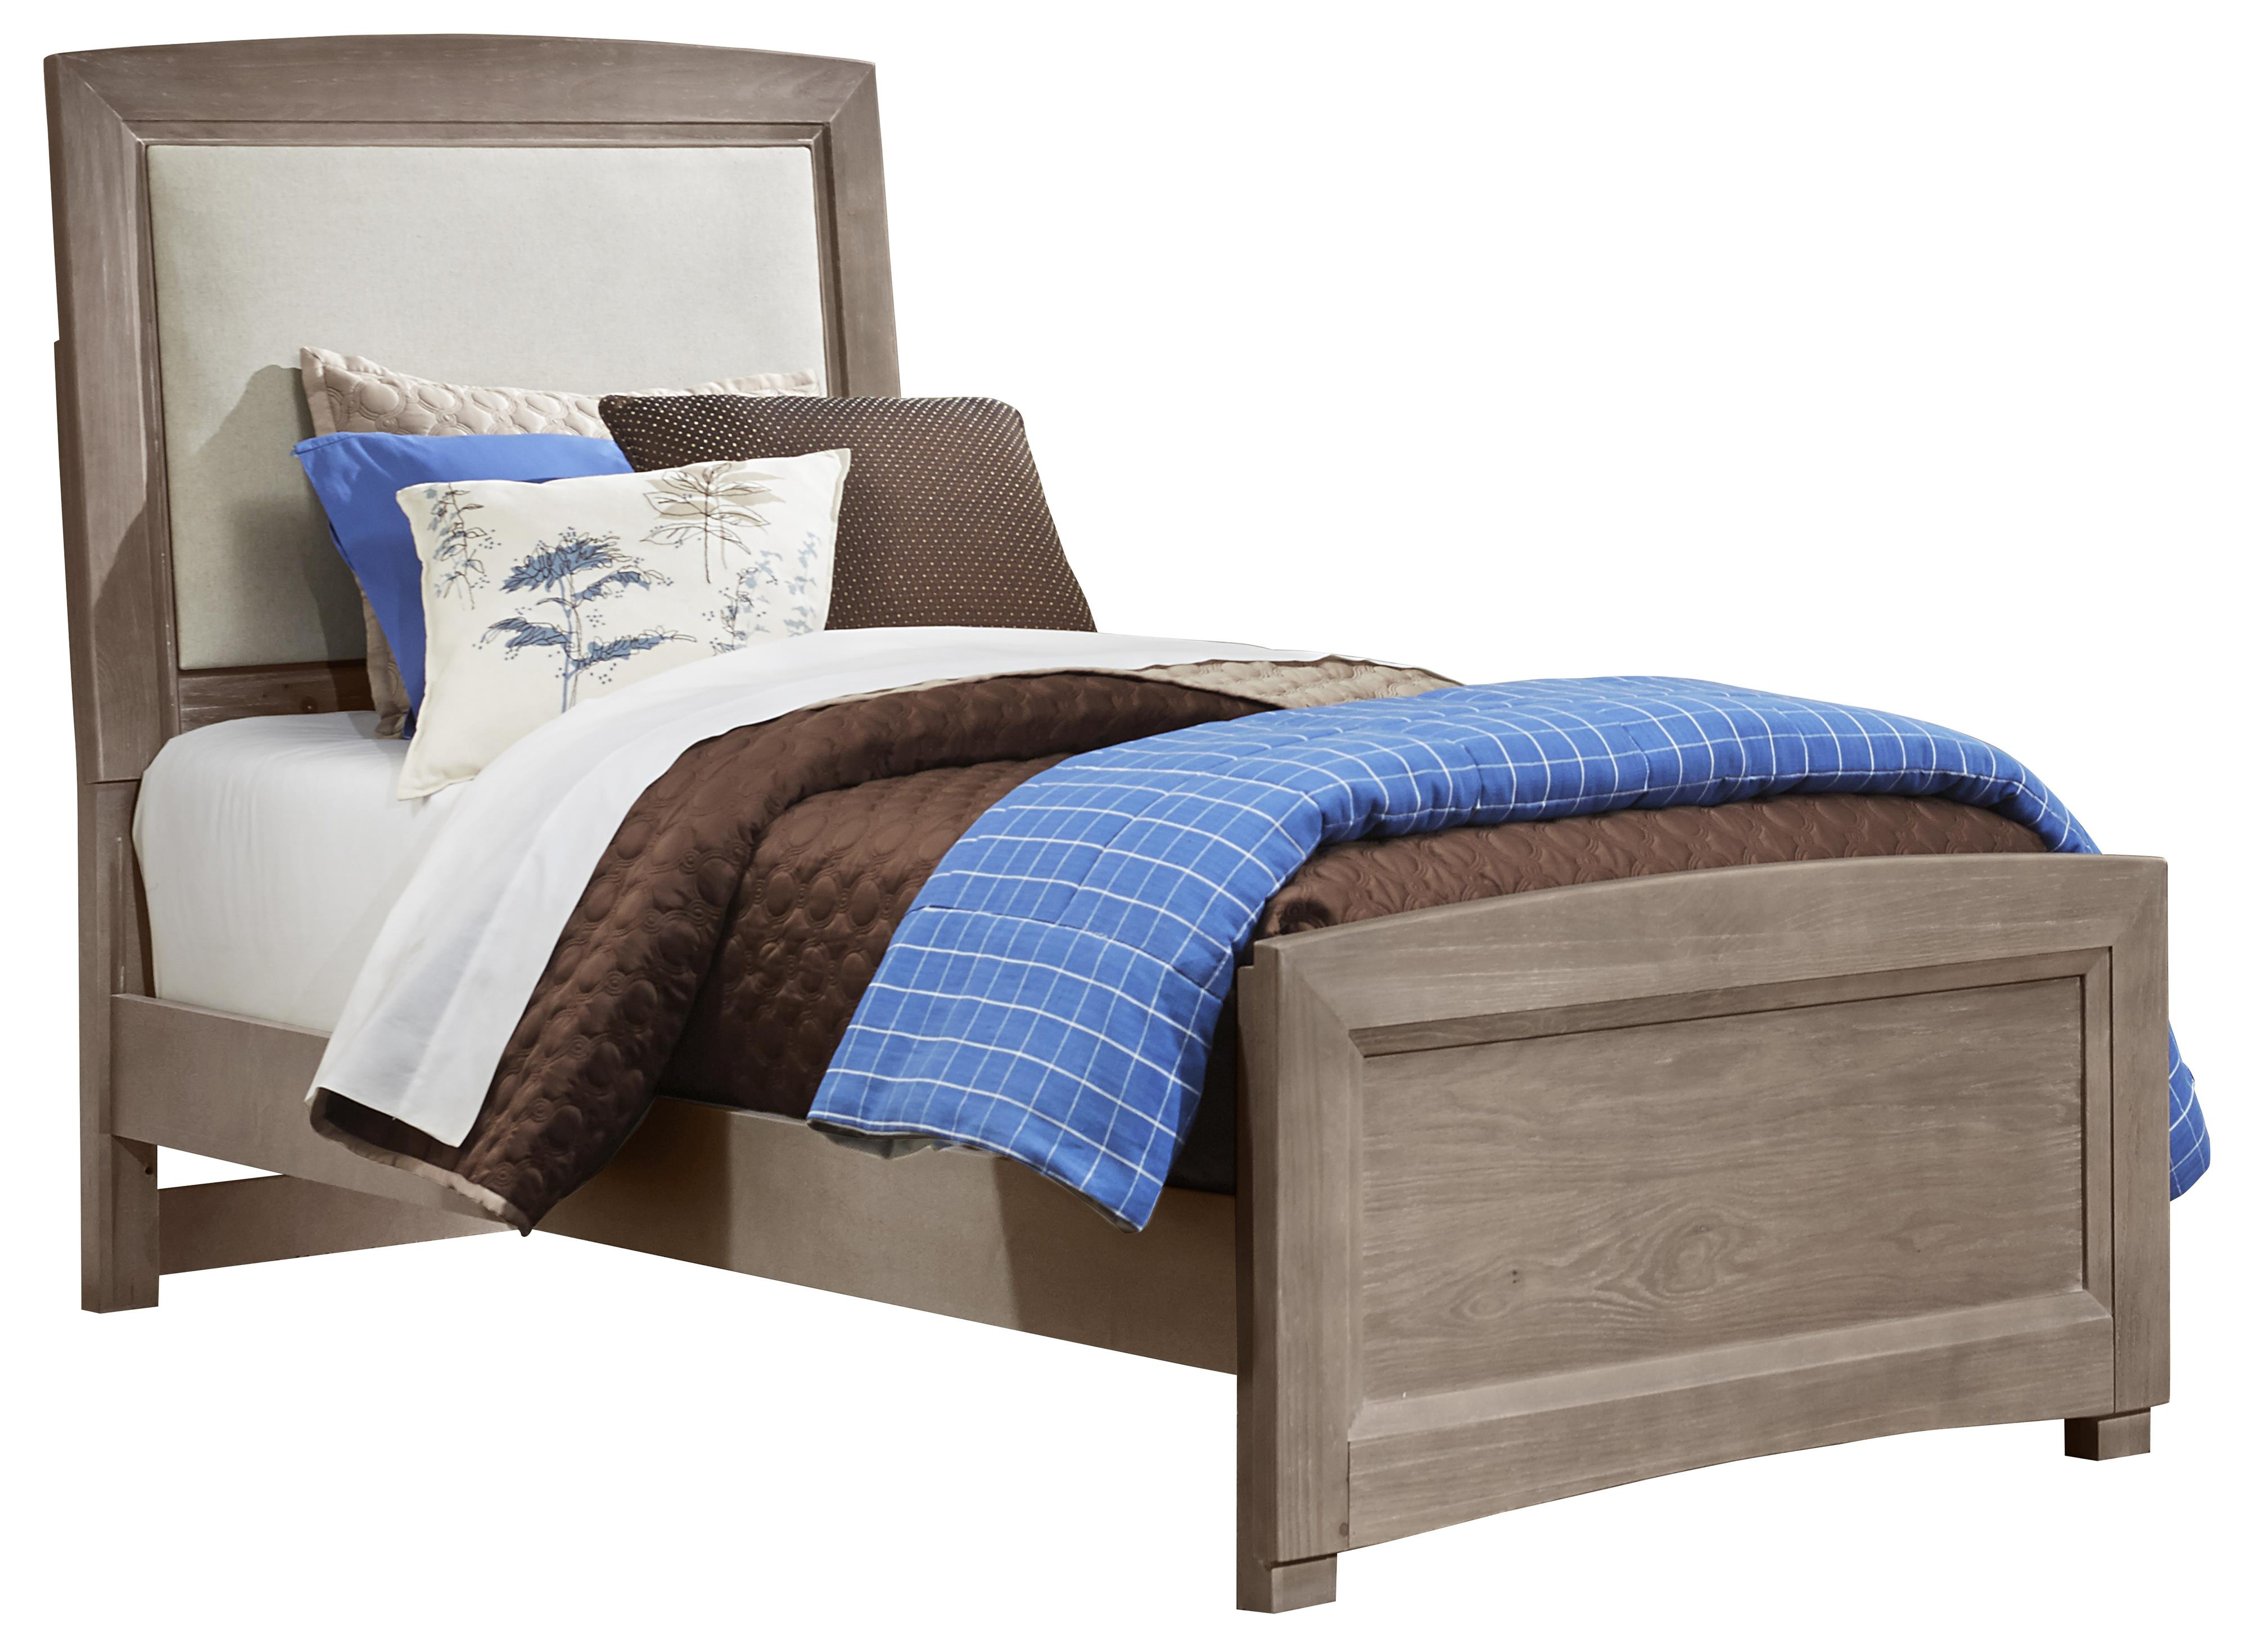 Transitions Twin Upholstered Bed, Base Cloth Linen by Vaughan Bassett at Lapeer Furniture & Mattress Center